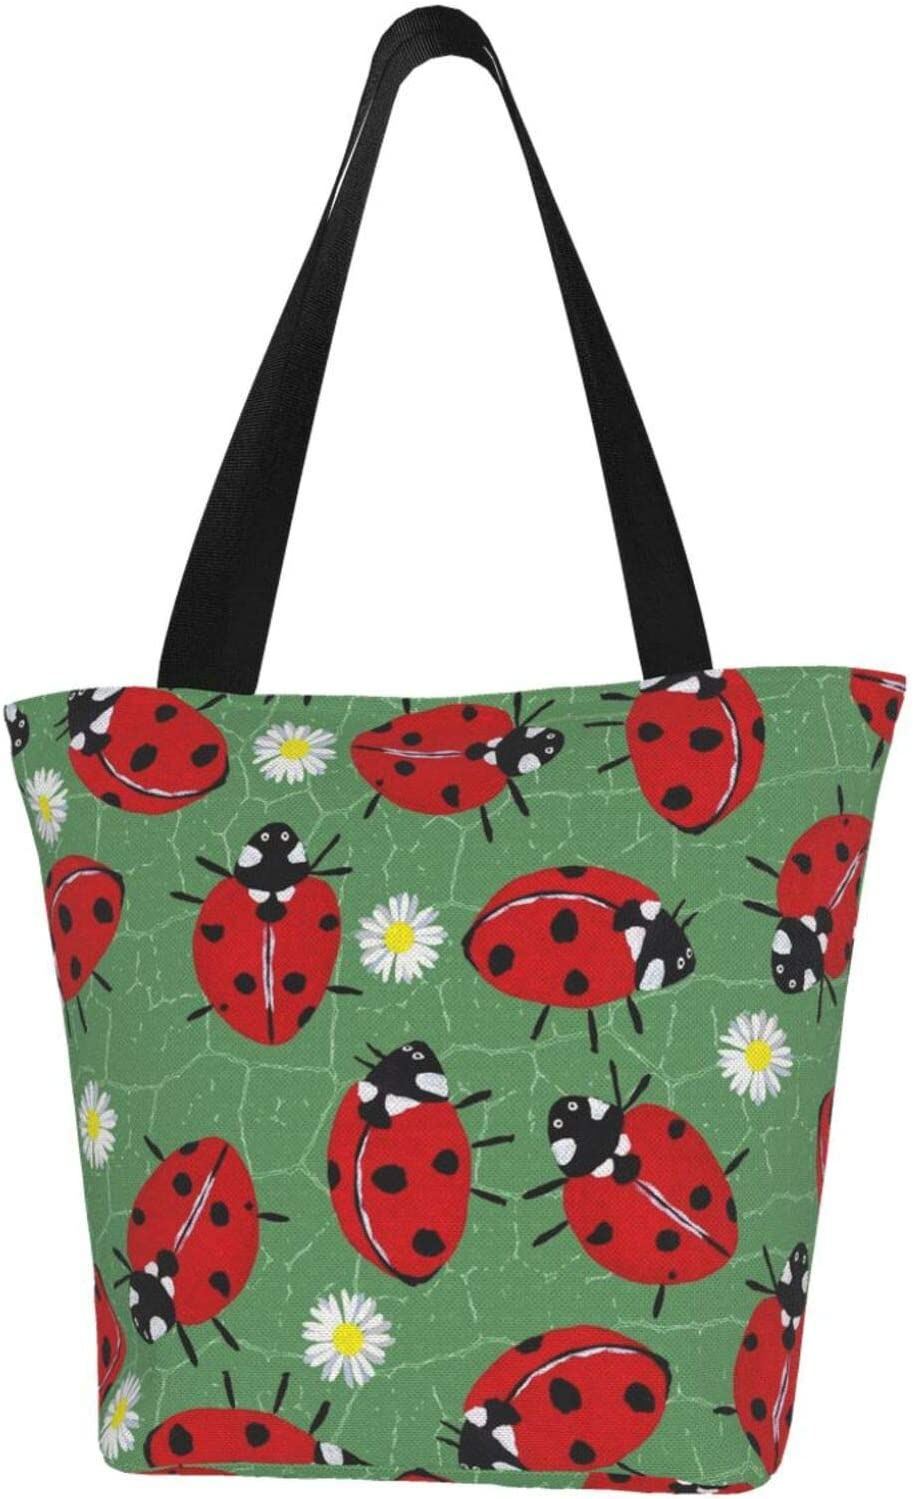 AKLID Ladybug Daisy Luxury goods Max 63% OFF Pattern Extra Large T Water Resistant Canvas